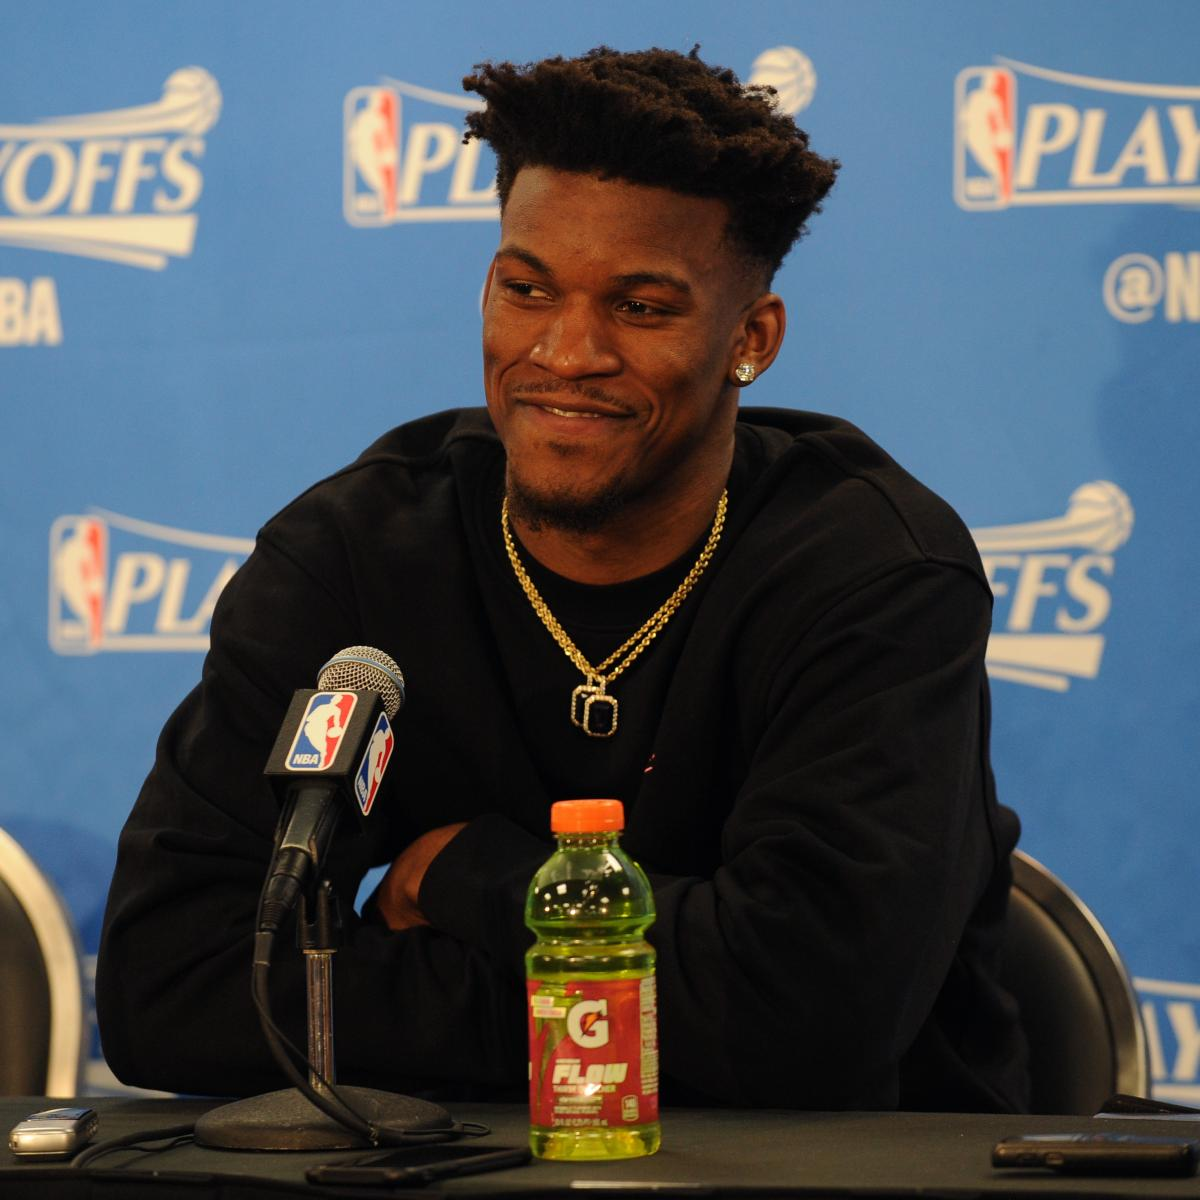 Jimmy Butler's Trainer Travelle Gaines Rips Bulls GM Gar Forman After Trade